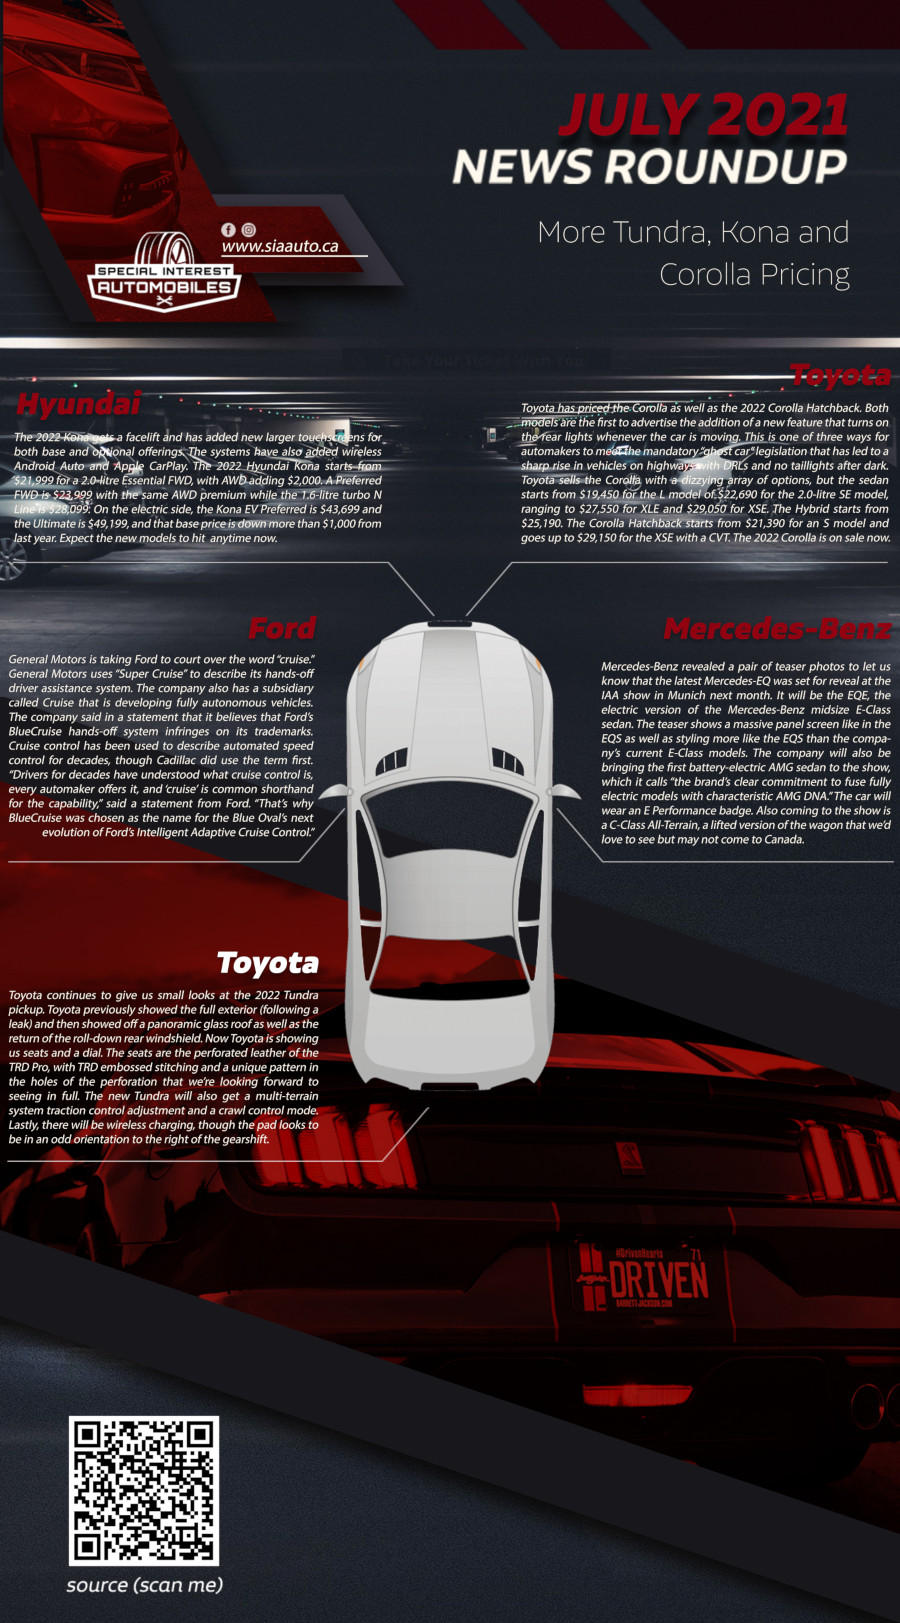 Auto News July 2021 Infographic